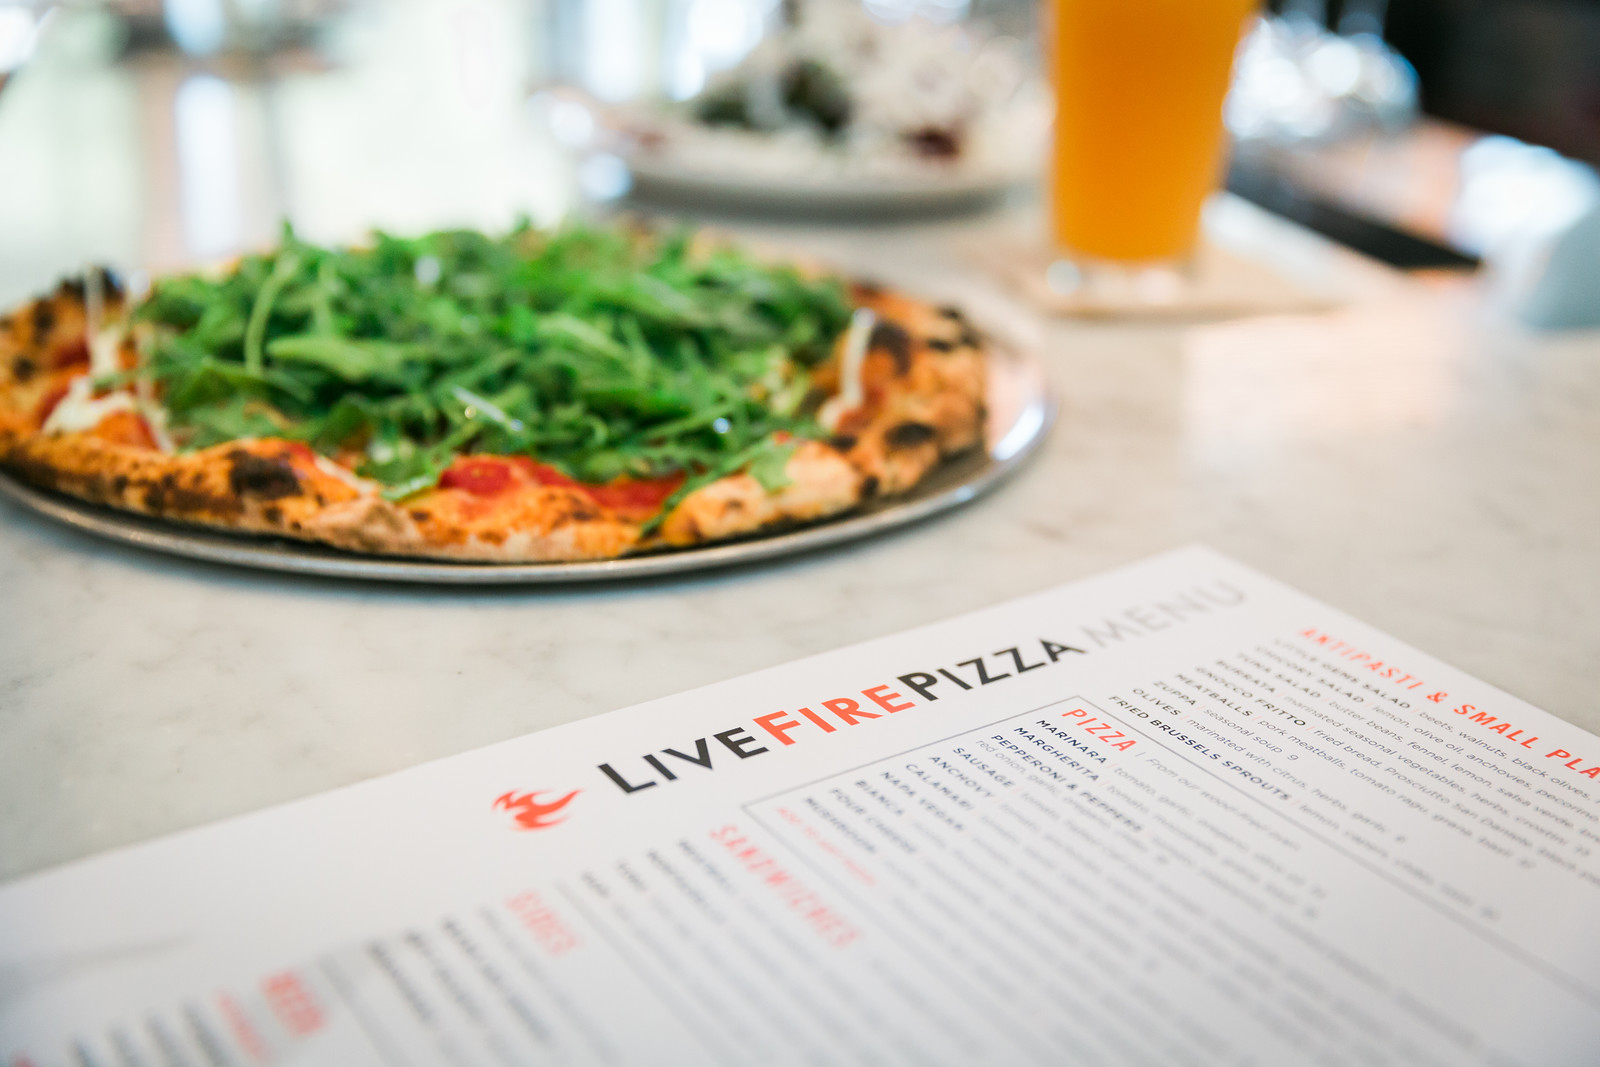 Photo of pizza next to the Live Fire Pizza menu